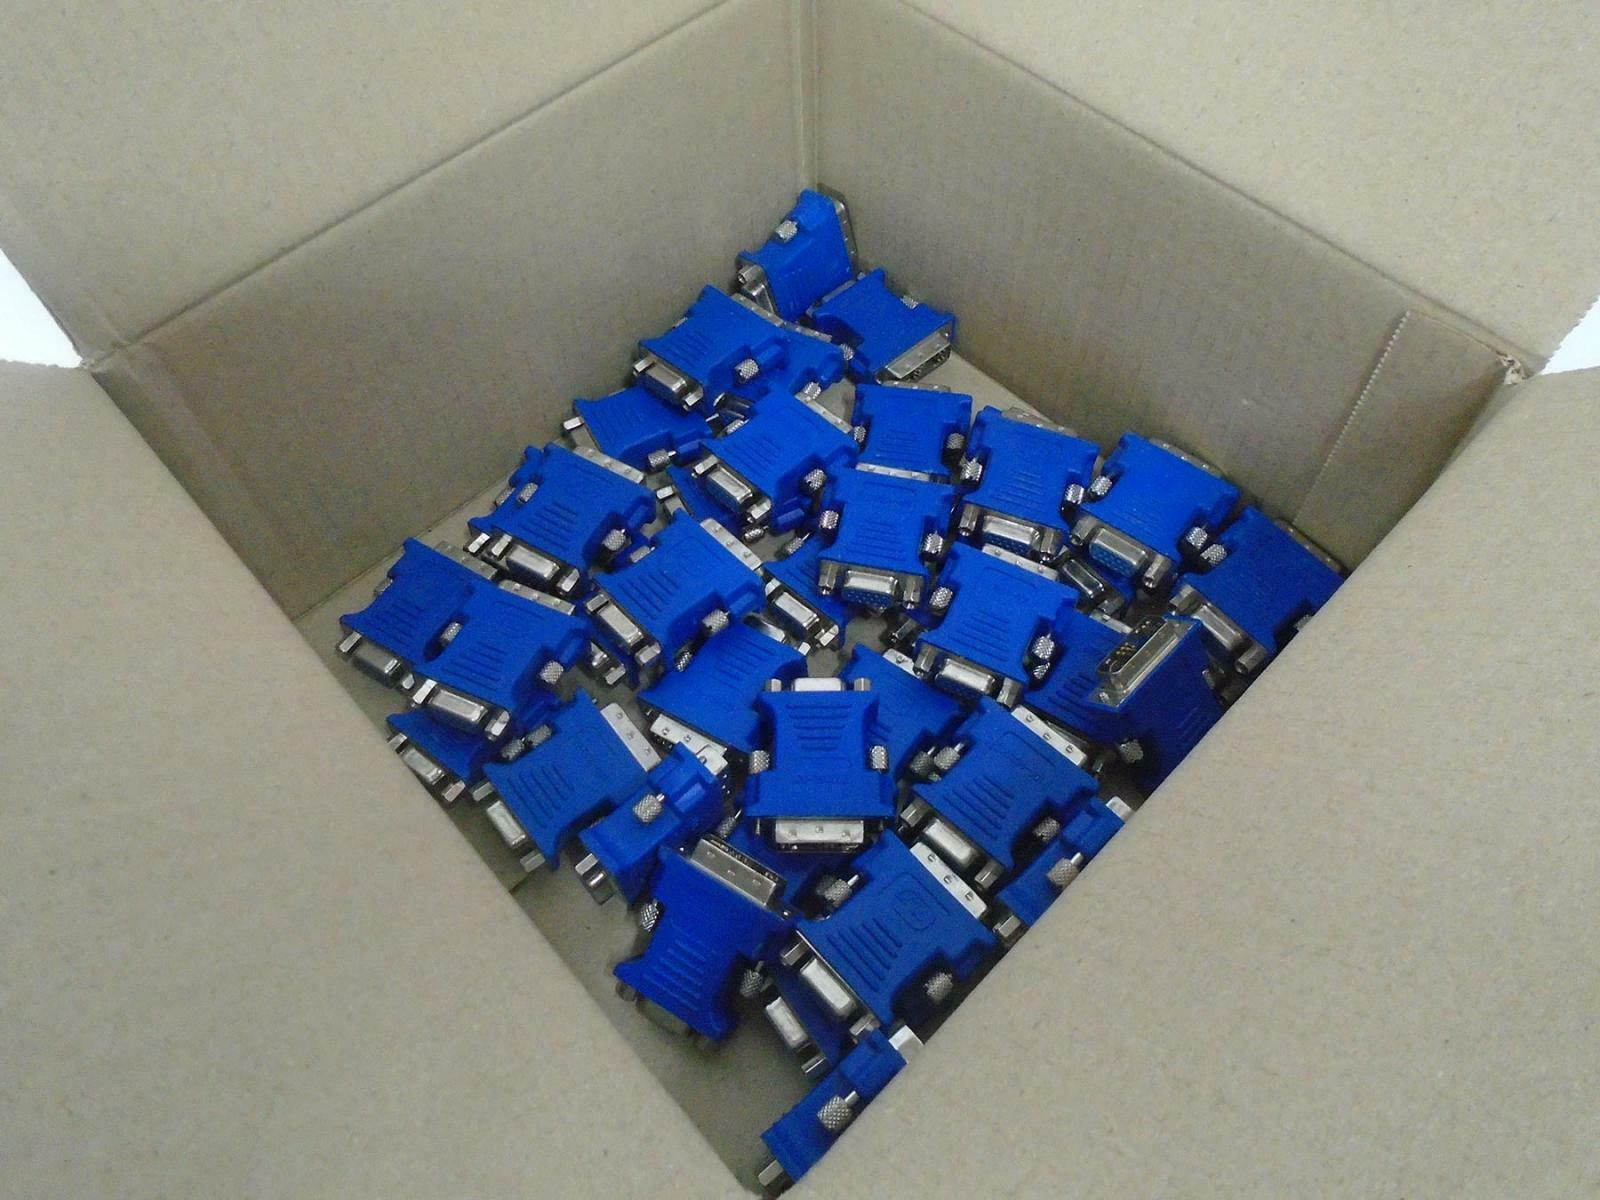 40 X Used DVI-I To VGA Adapter For PC Computer Laptop (Blue) (Untested/Varied)